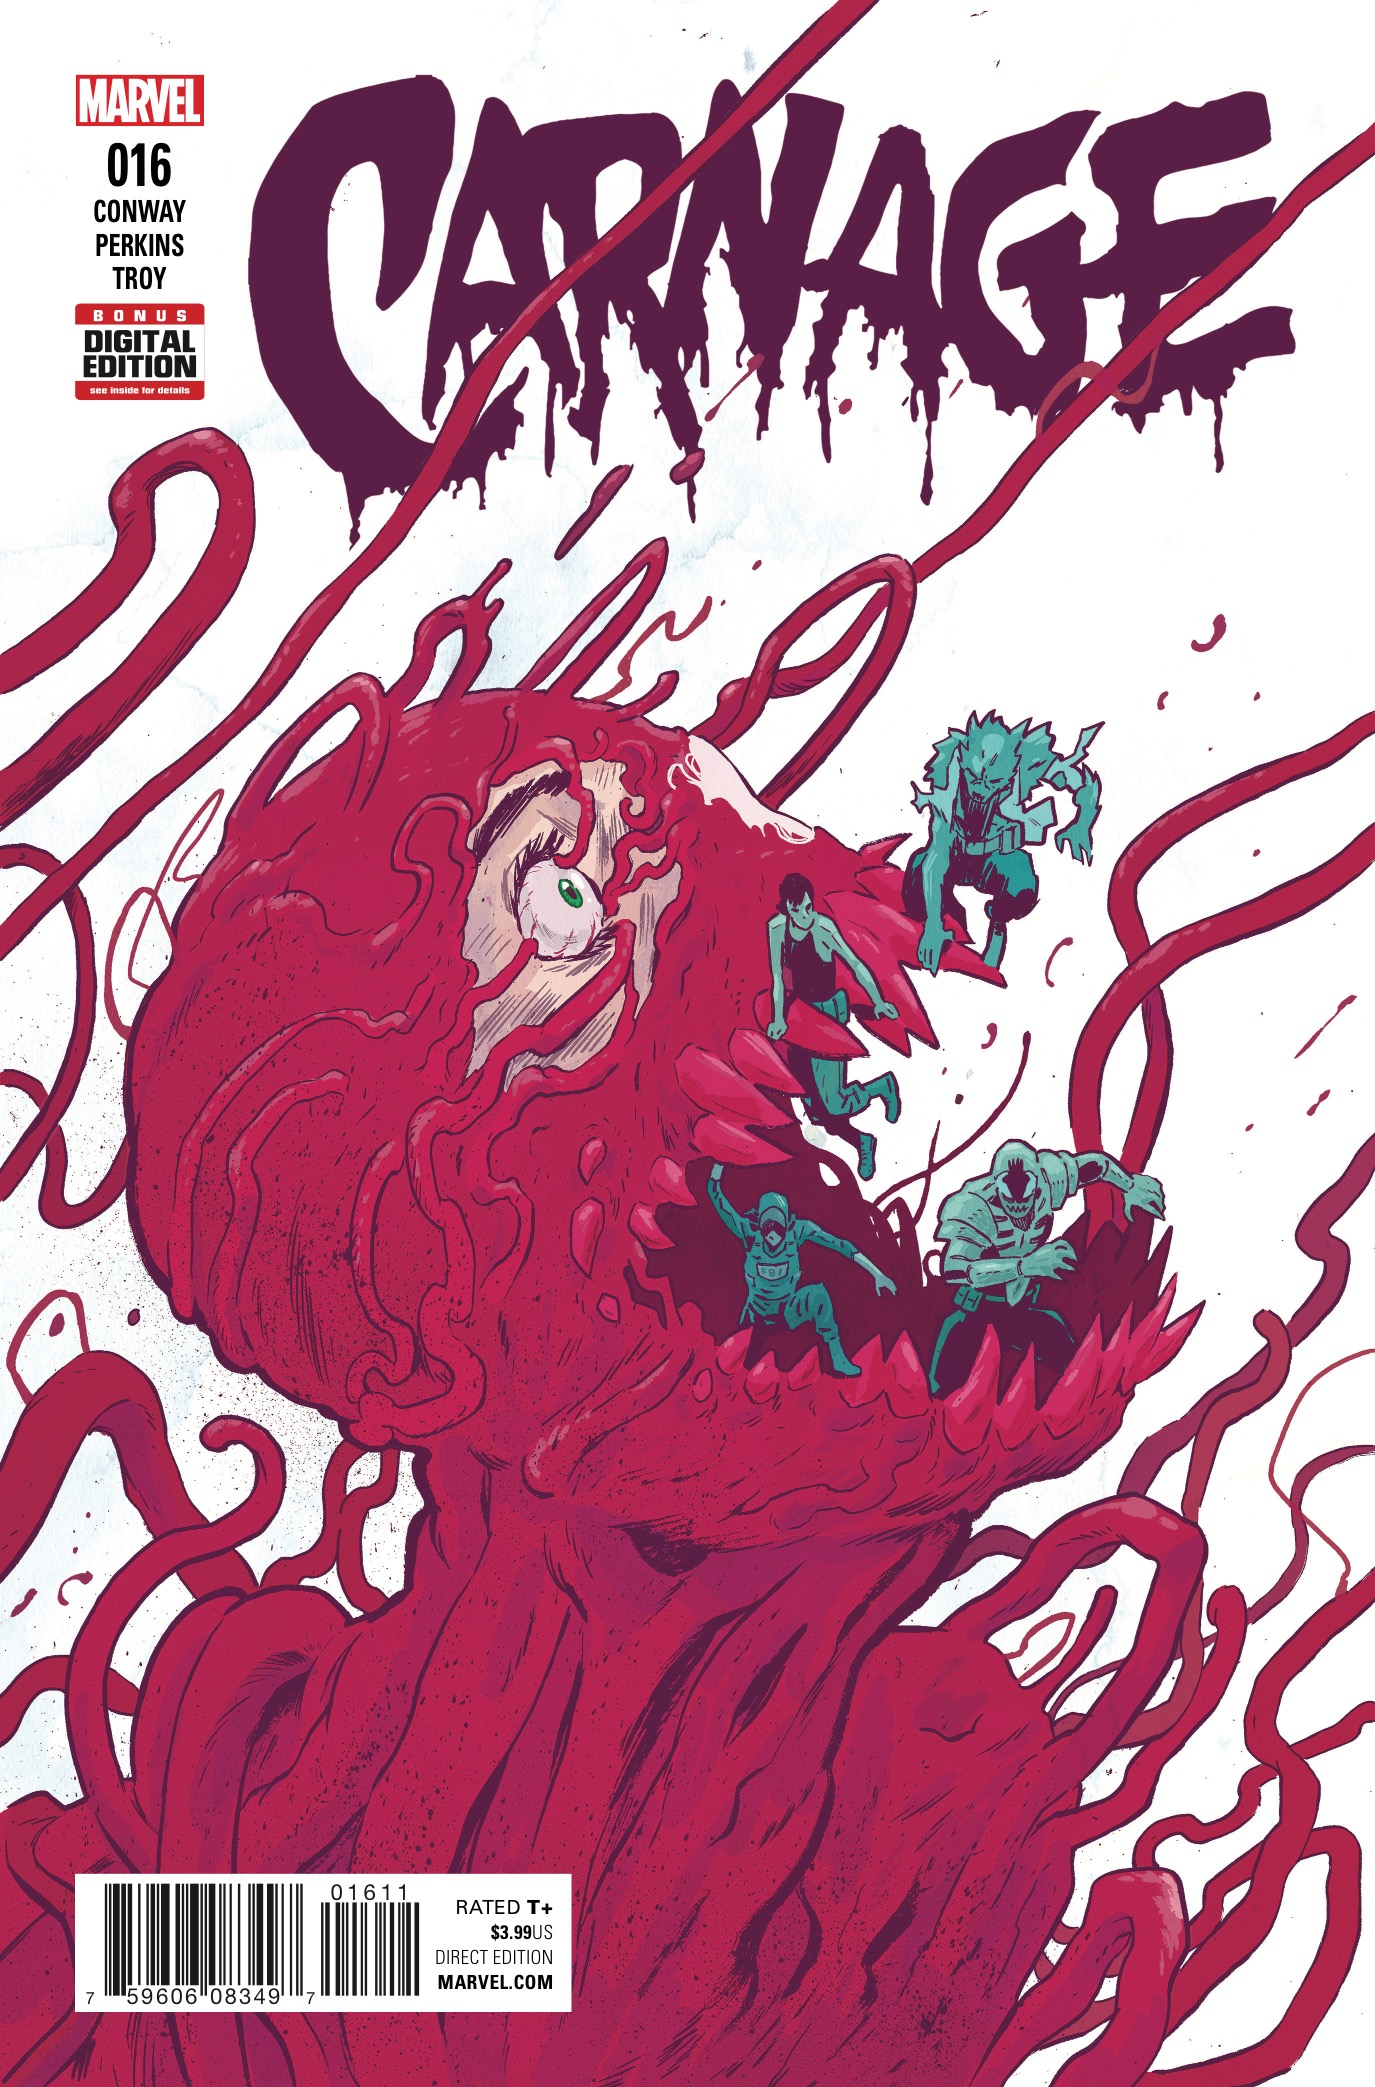 Carnage #16 Review